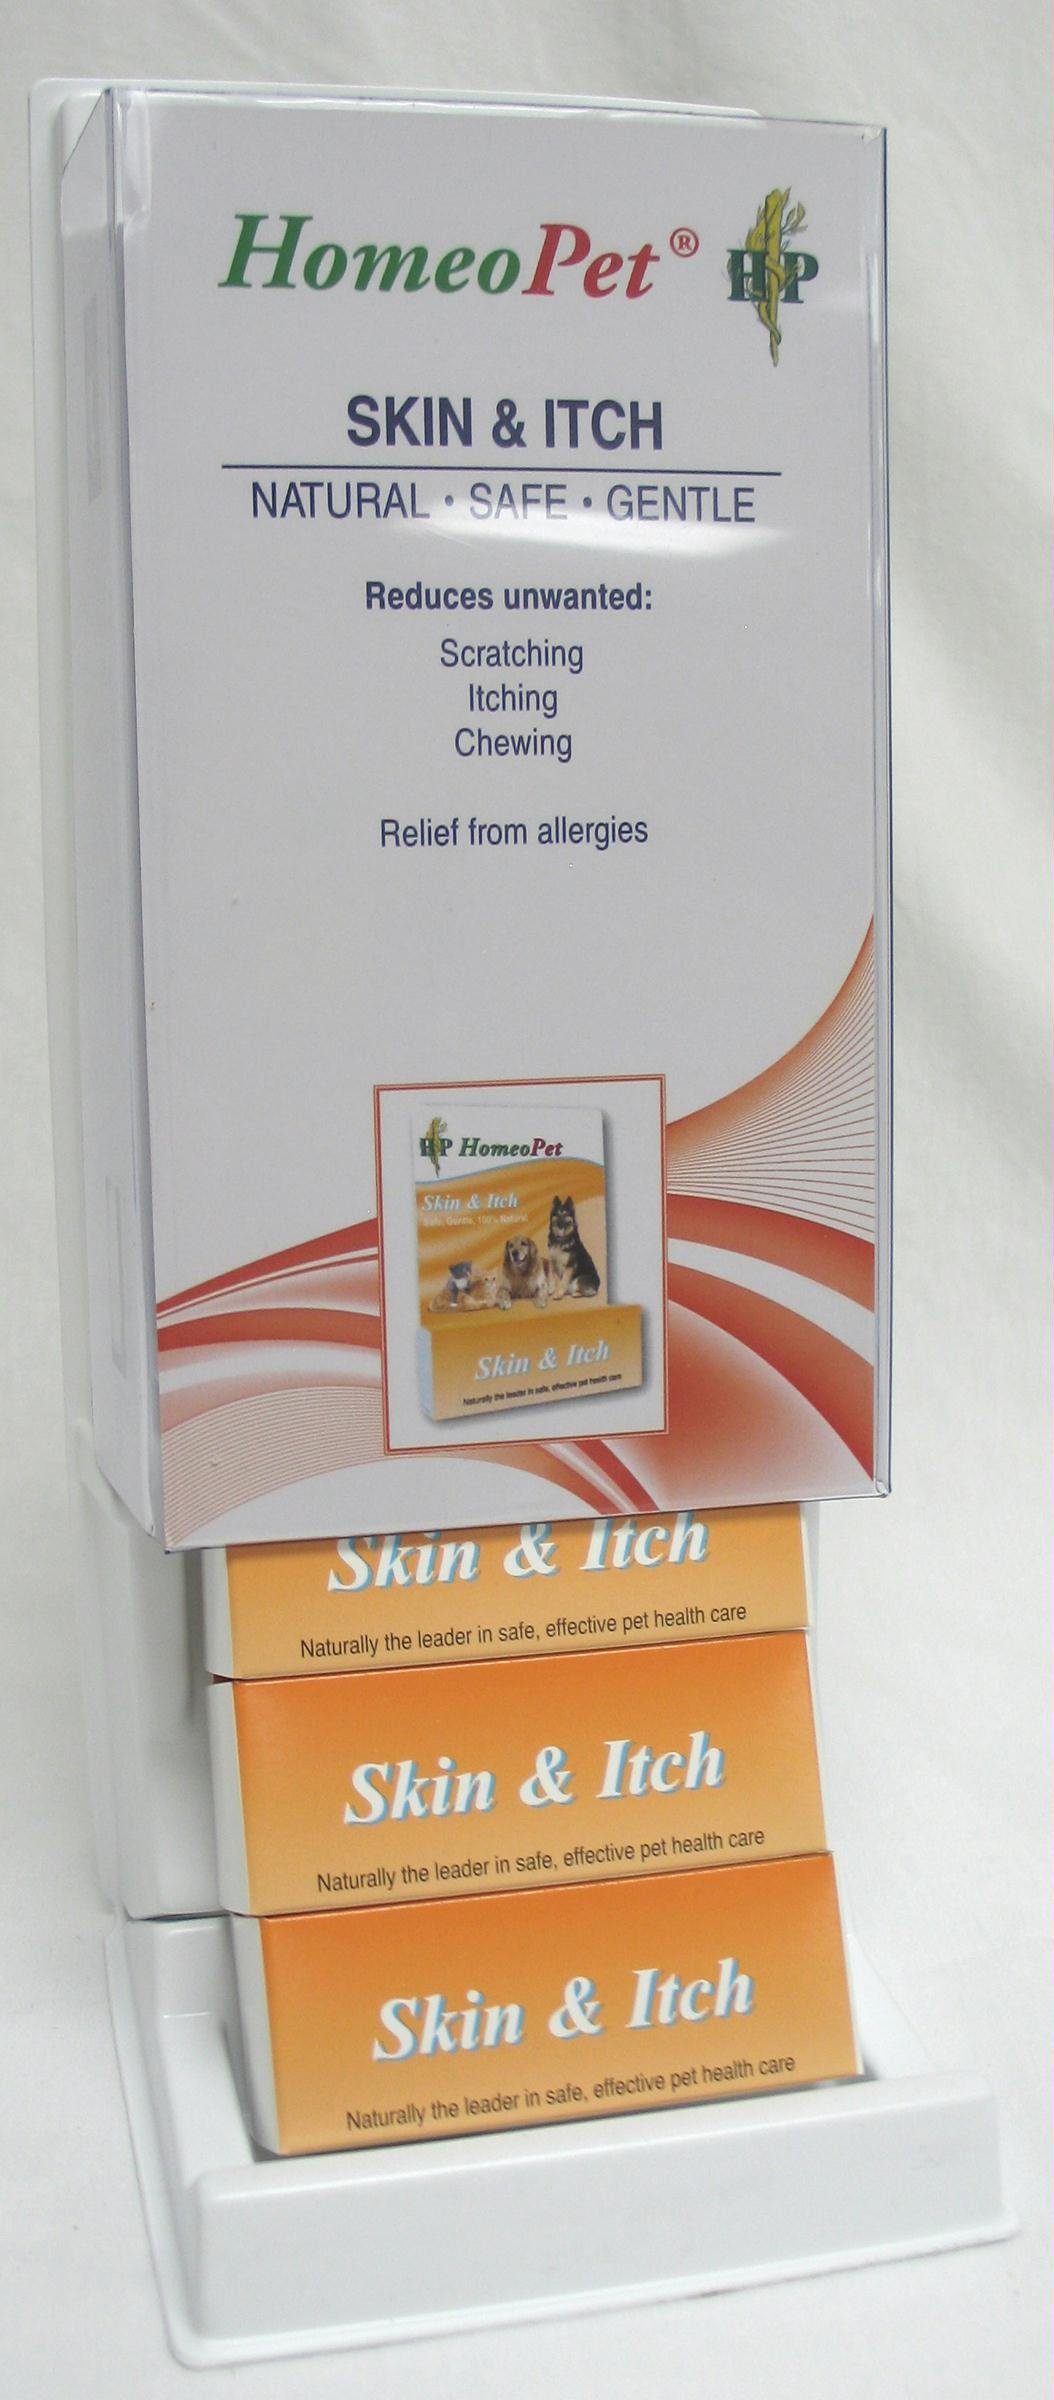 Homeopathic Skin & Itch Relief Display - 04725 - Bci